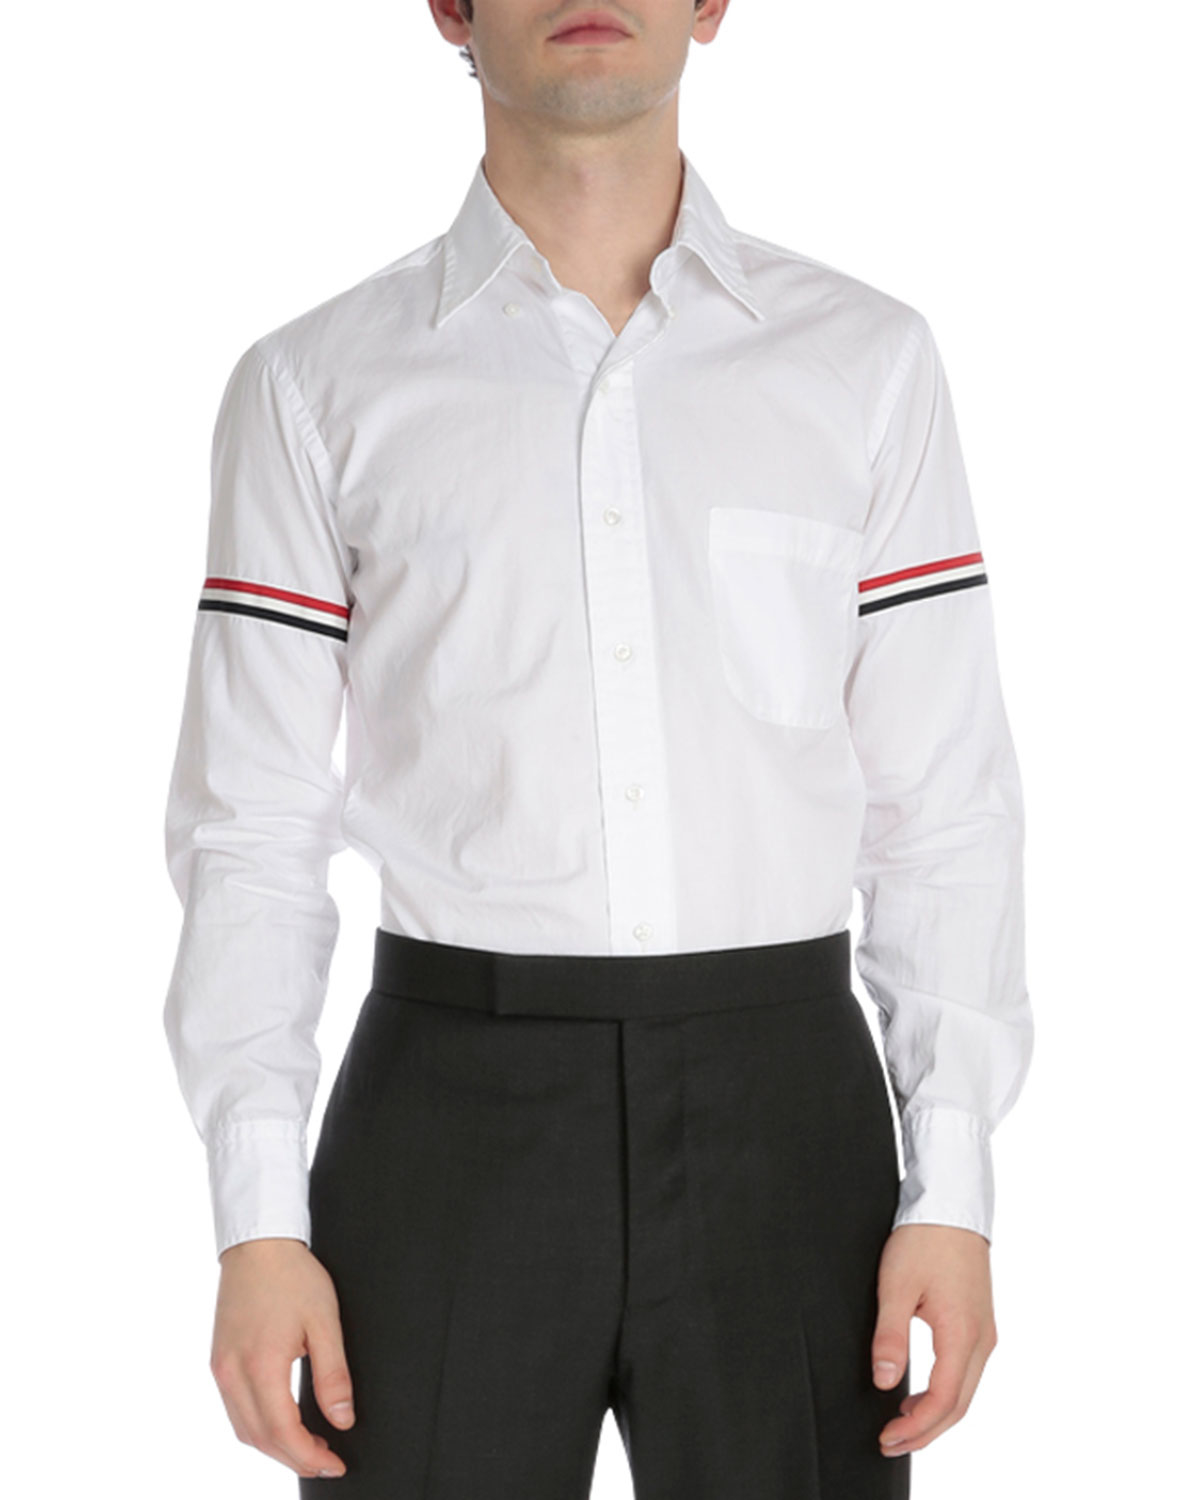 classic shirt Thom Browne Latest Discount PK9Va